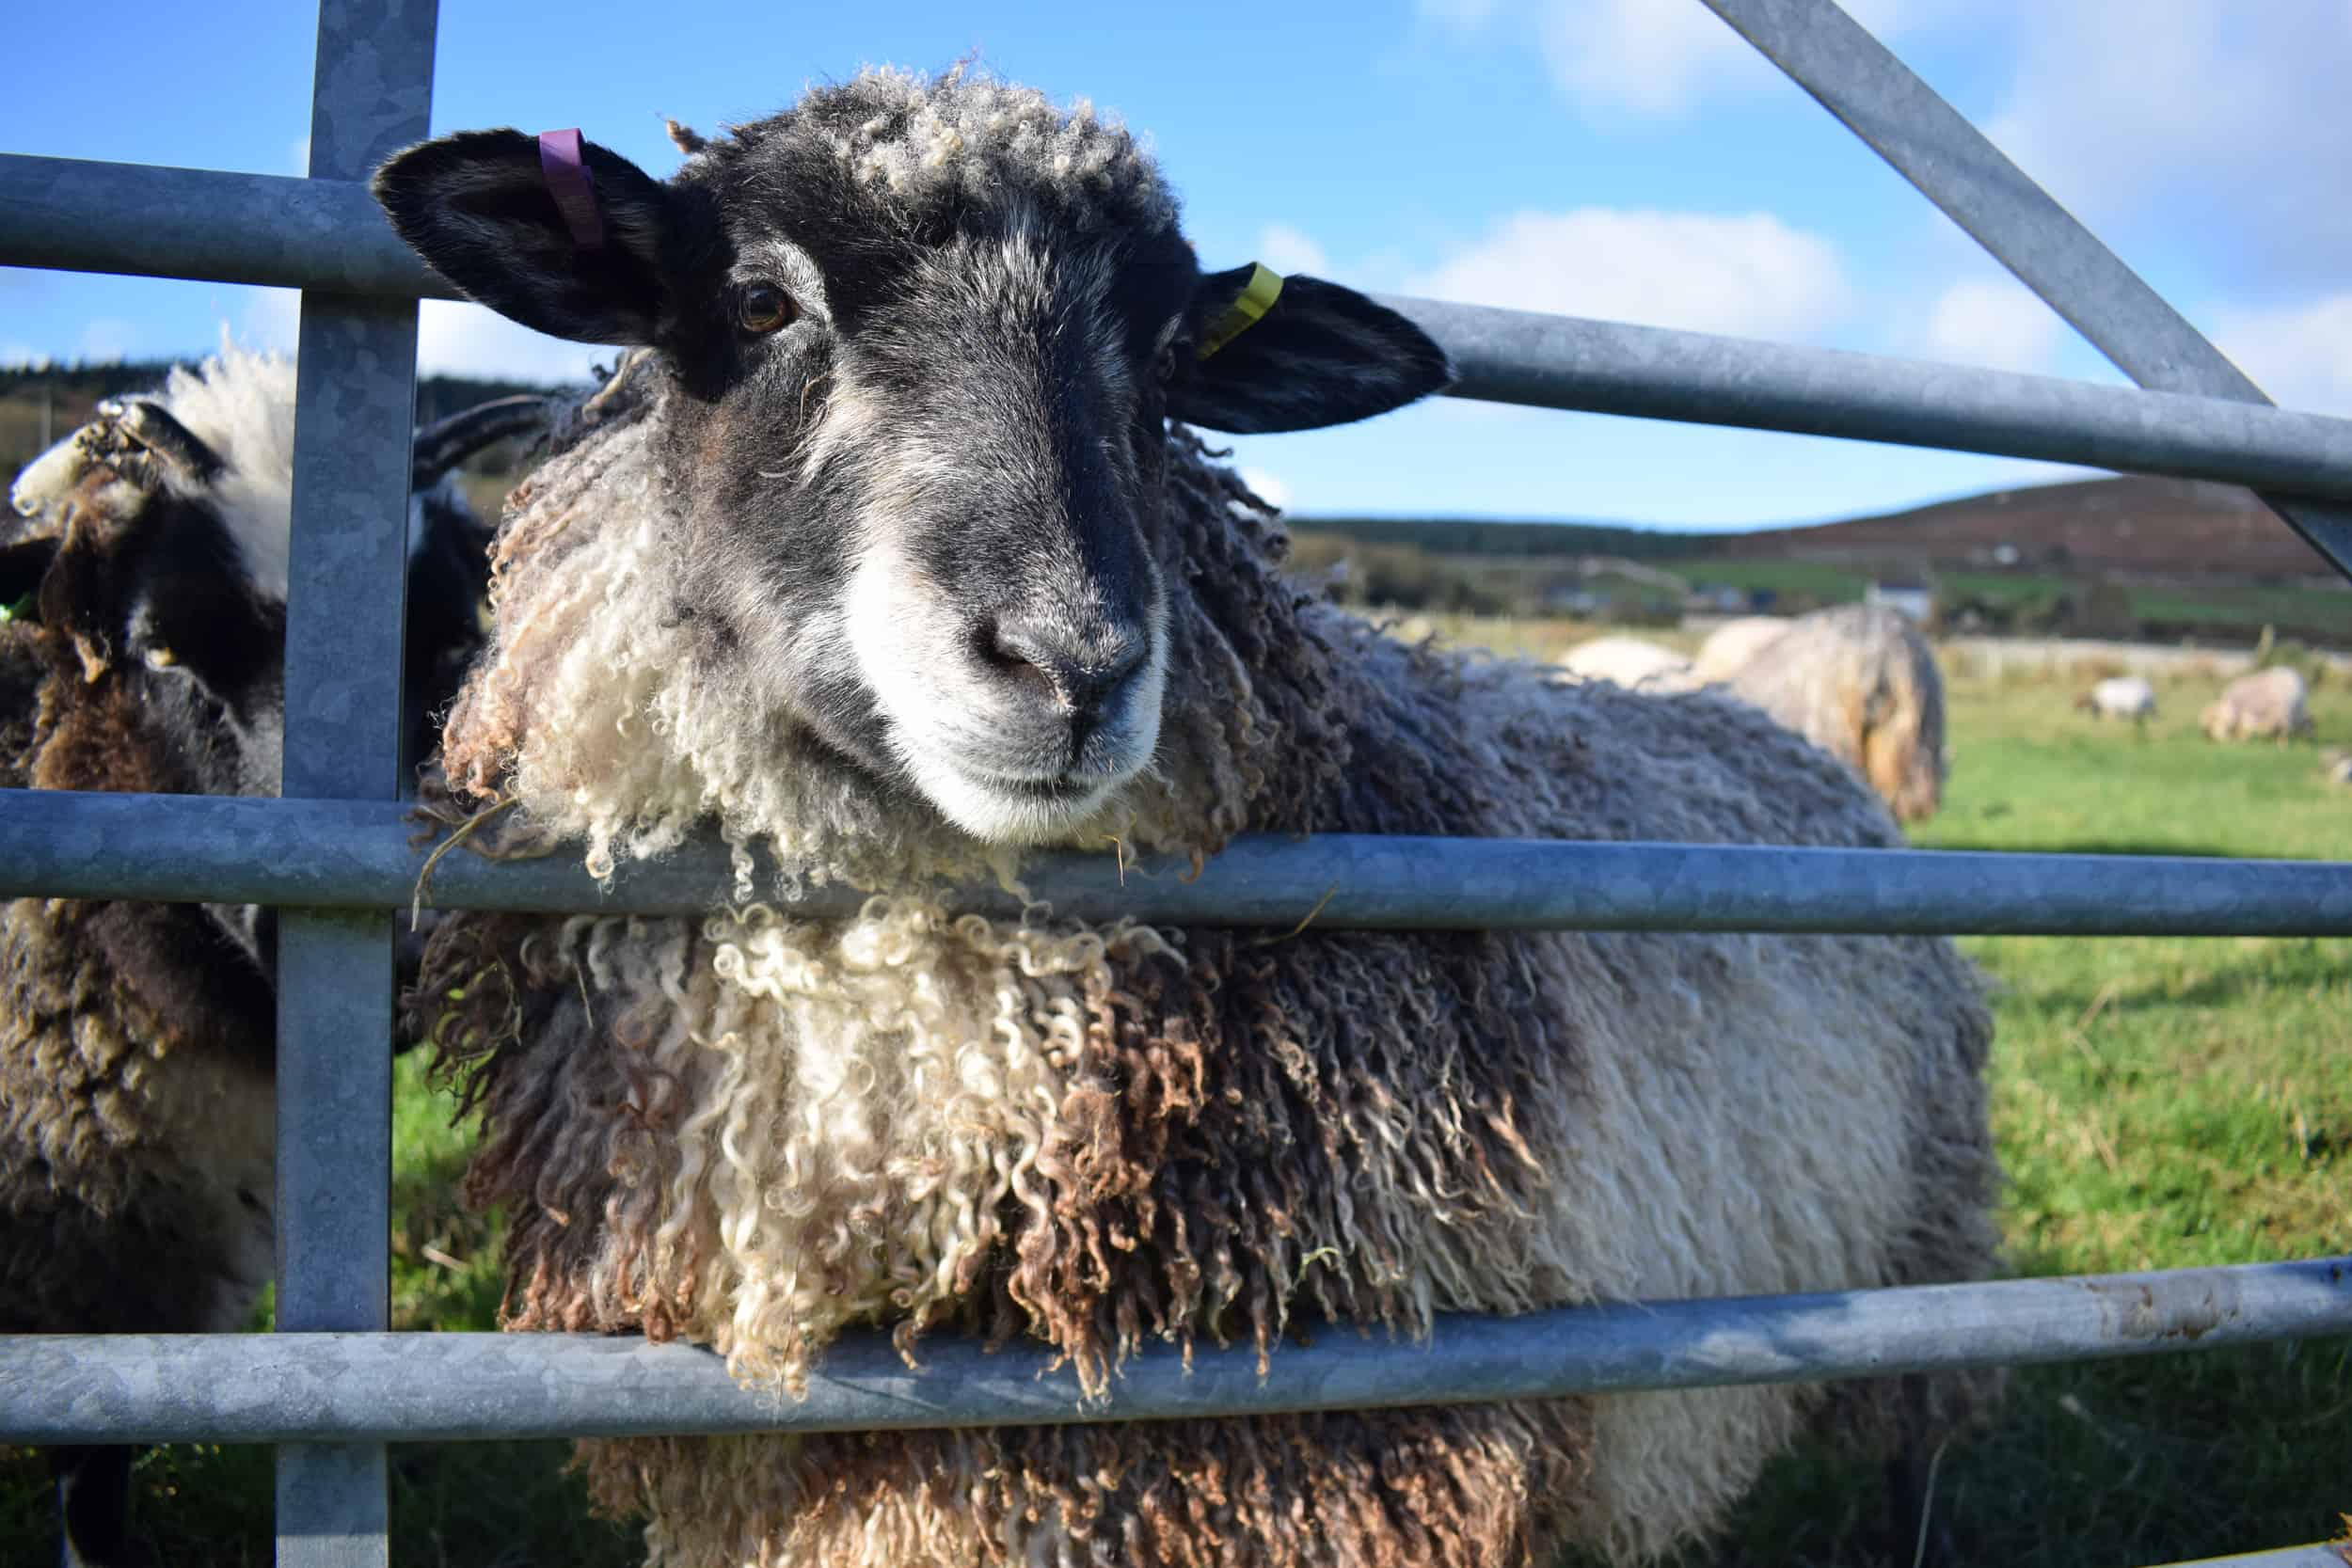 Jemima sheep farm animals coloured leicester longwool gotland sheep shetland ewe lamb kind fibre british wool grey patchwork sheep